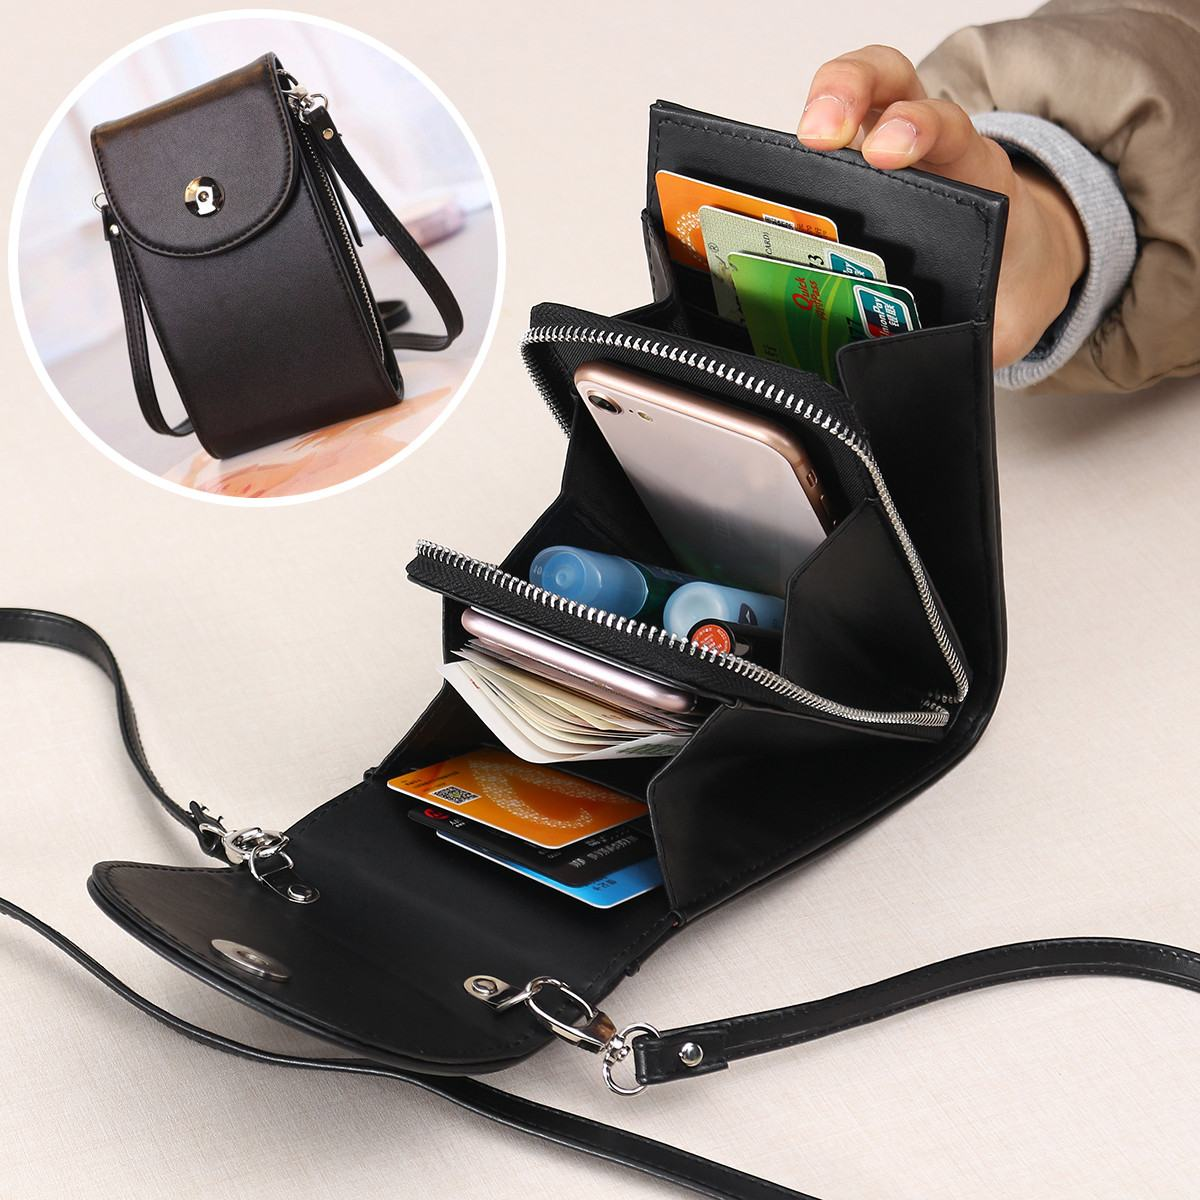 3 Layers Big Capacity Lady Shoulder Bag Leather Wallet Daily Shopping Phone Wallet Mini Crossbody Purse Women Girls Gift